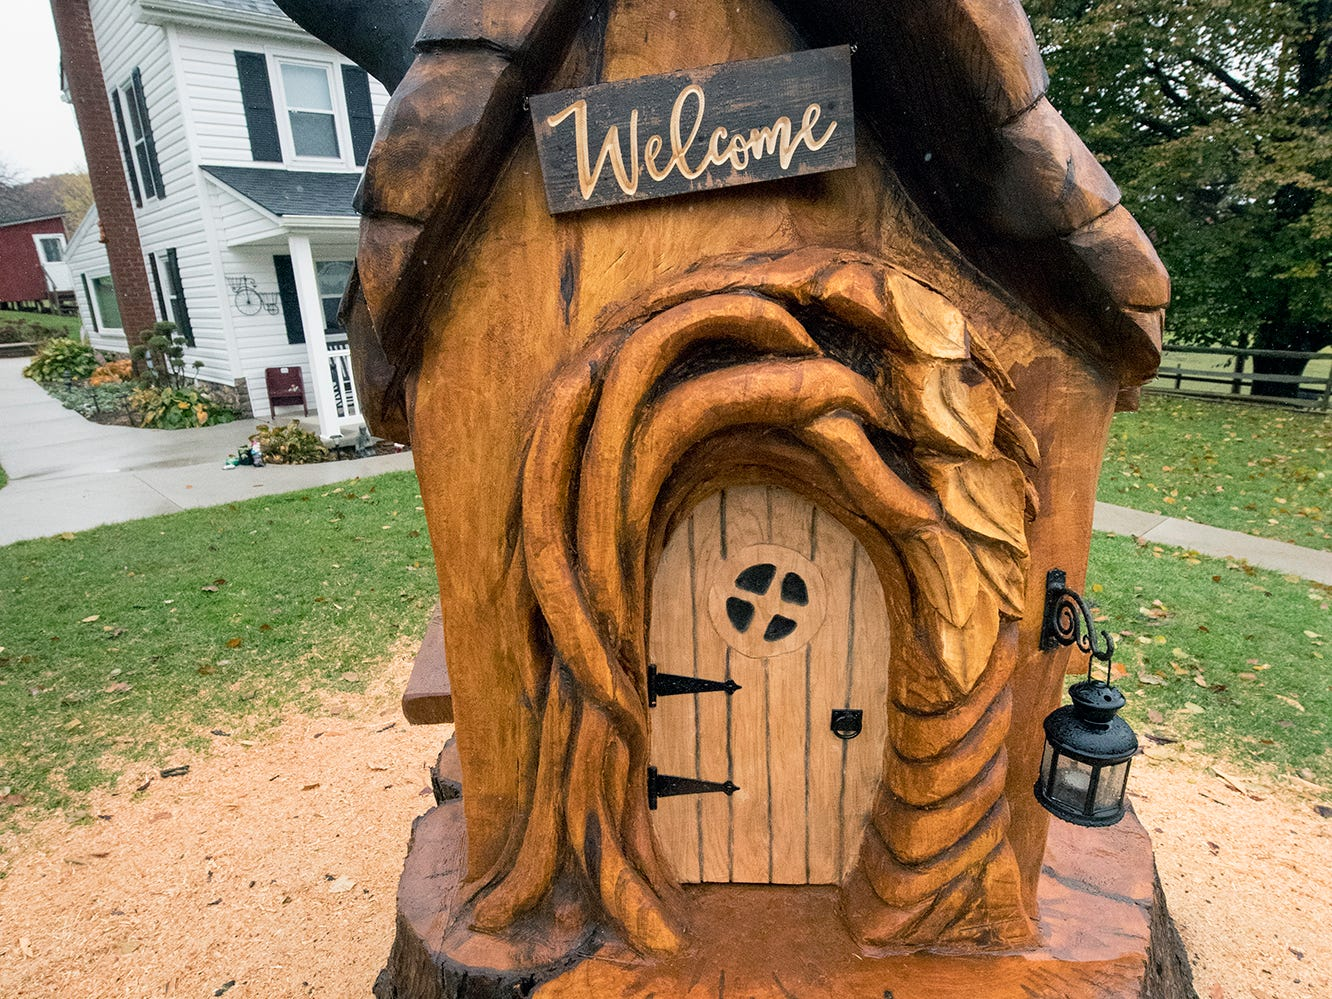 This is a fairy house carved with a chainsaw by Paul Walco. You can see it at the Teaching Museum for the Fiber Arts & Textiles near Winterstown on the York/Adams Best Kept Secrets Tour until Nov. 17.